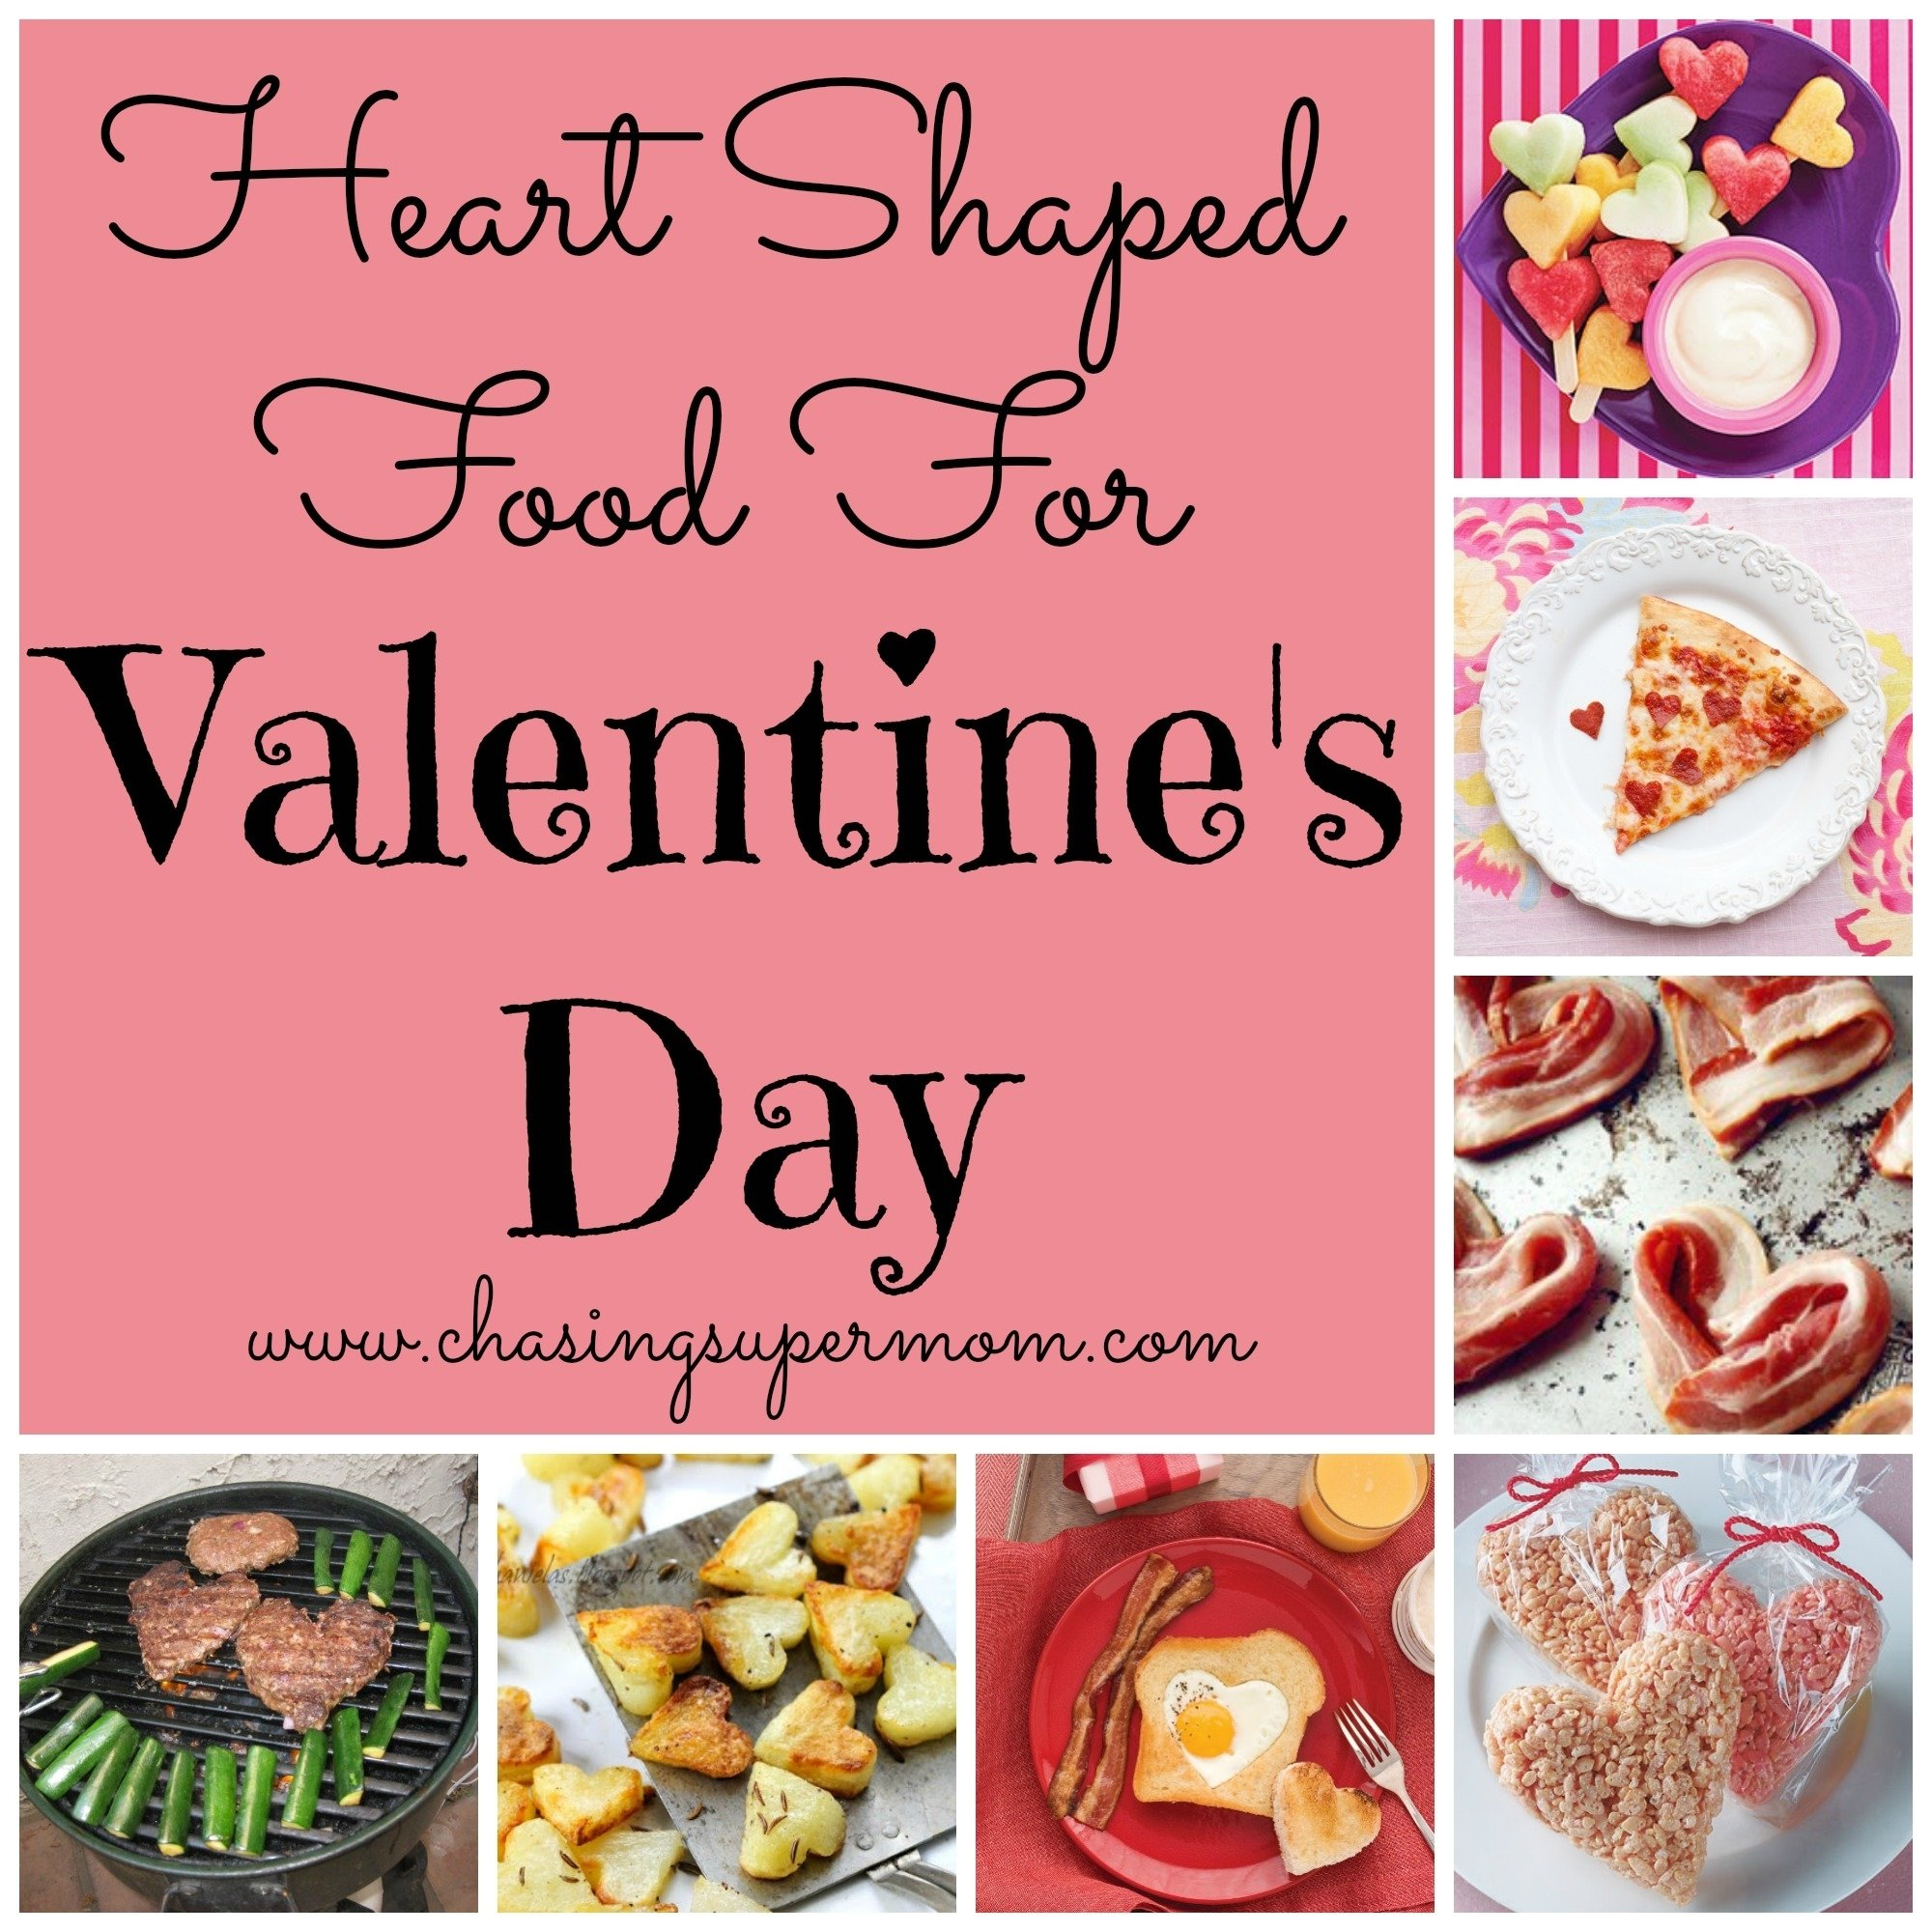 10 Awesome Food Day At Work Ideas valentines day food ideas heart shaped food chasing supermom 1 2020